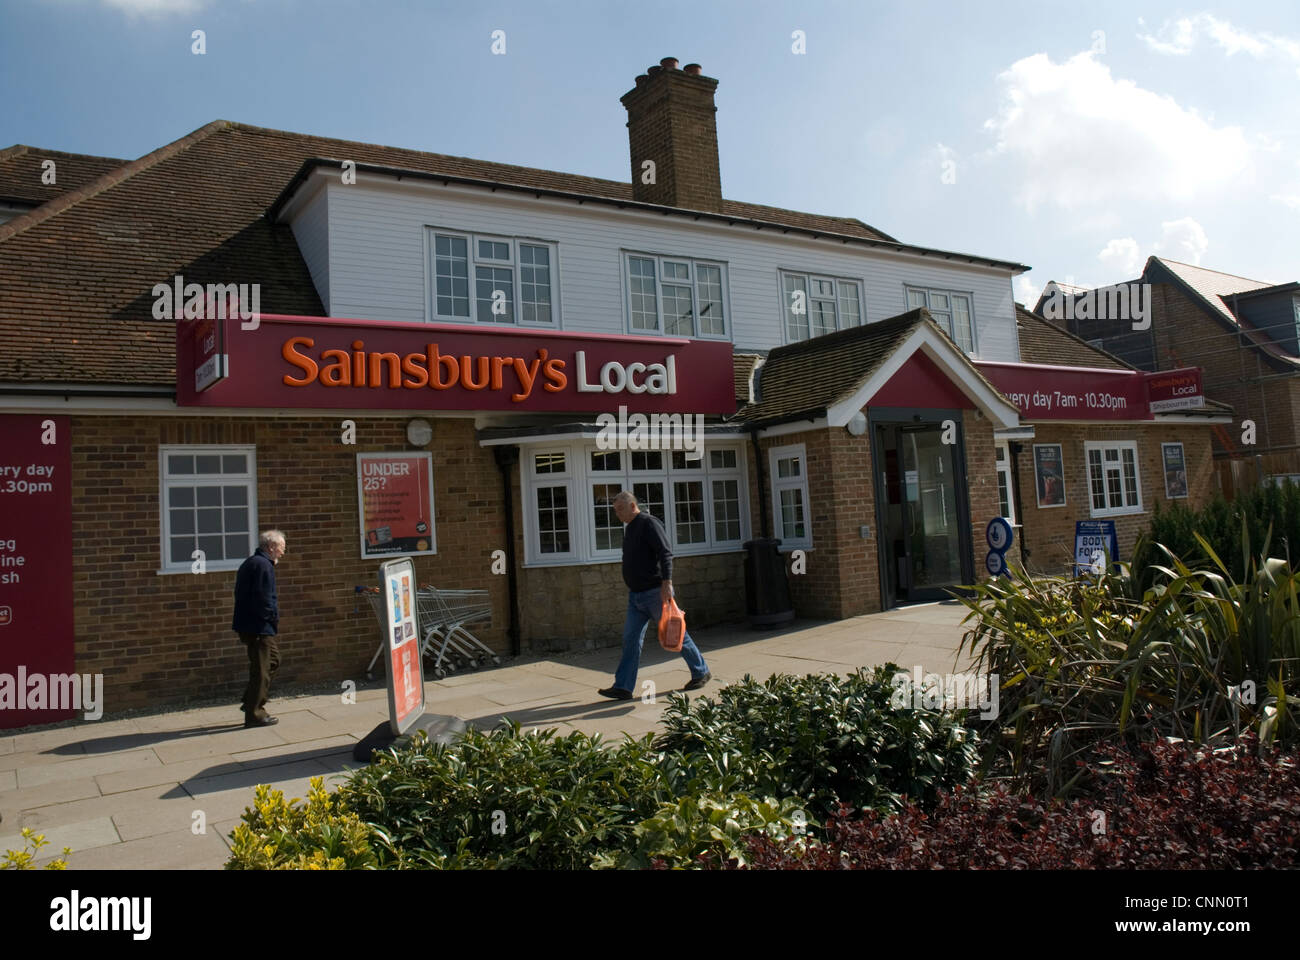 Sainsbury's Local converted public house converted pub formerly The Bishop's Oak Shipbourne Road Tonbridge - Stock Image